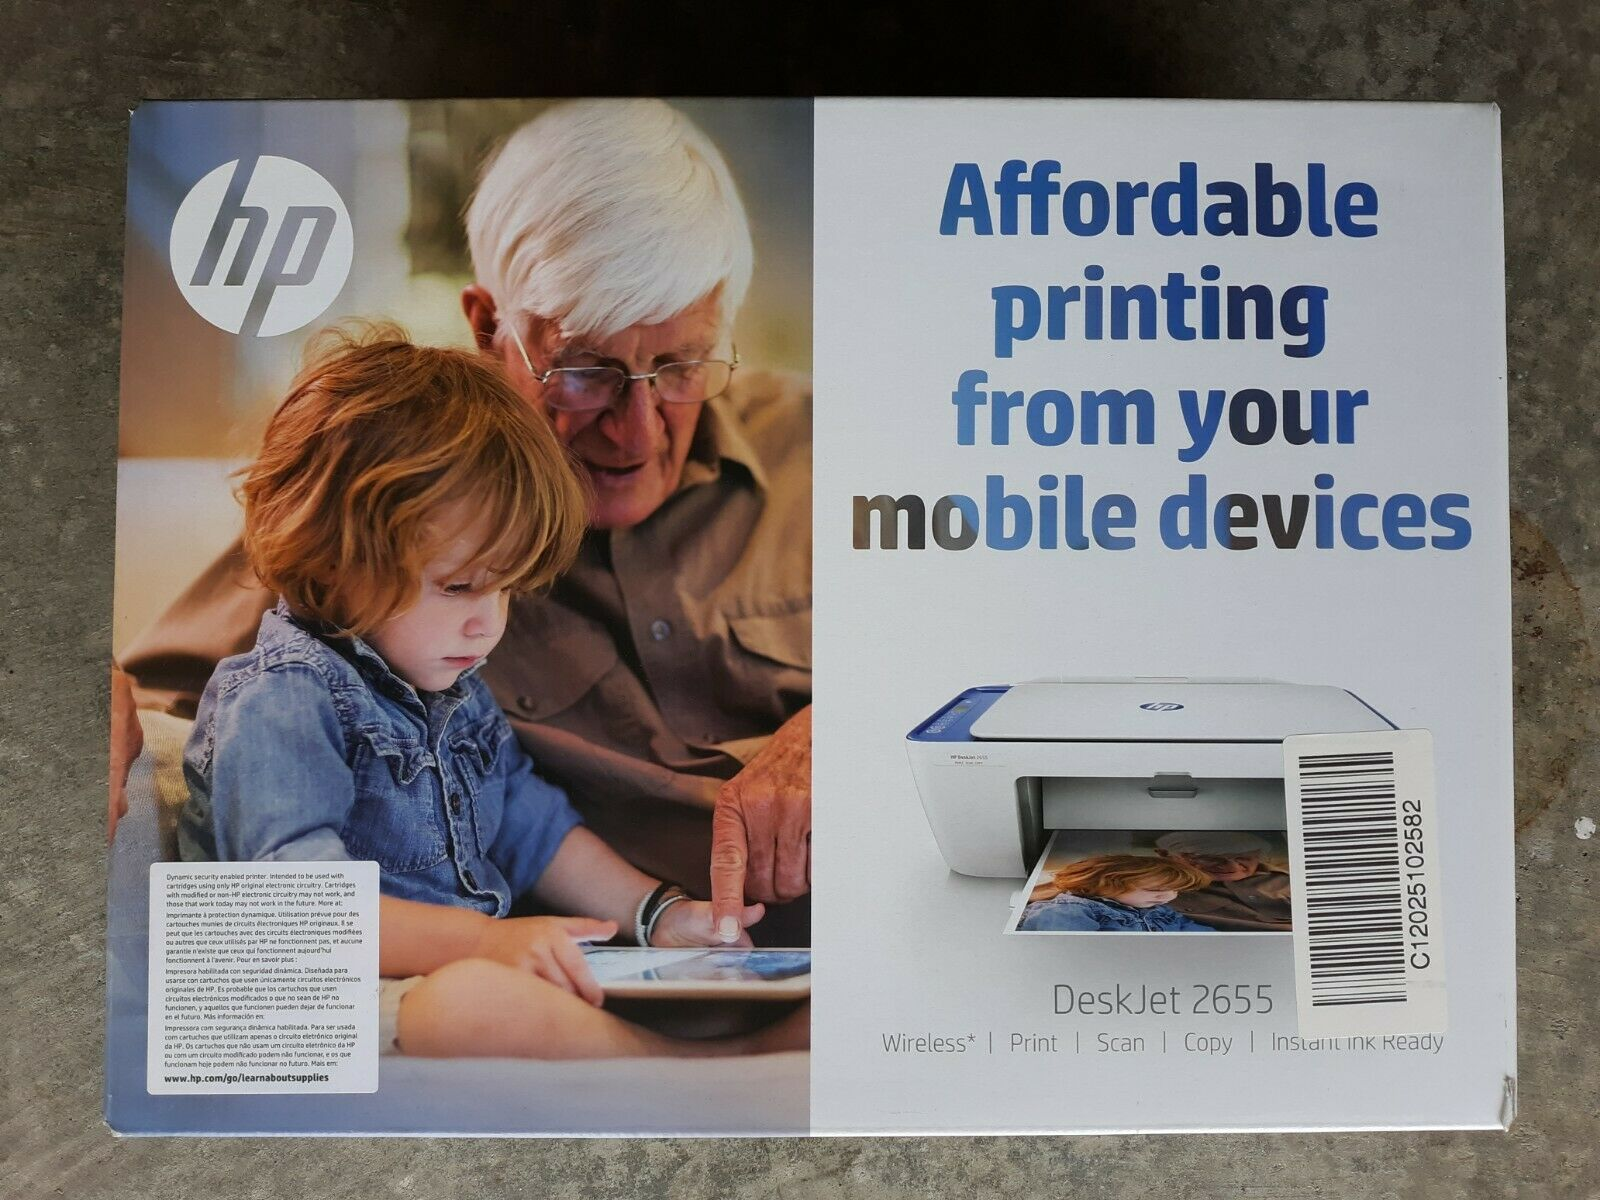 Best Small All-in-One Wireless Printer HP Compact Blue DeskJ